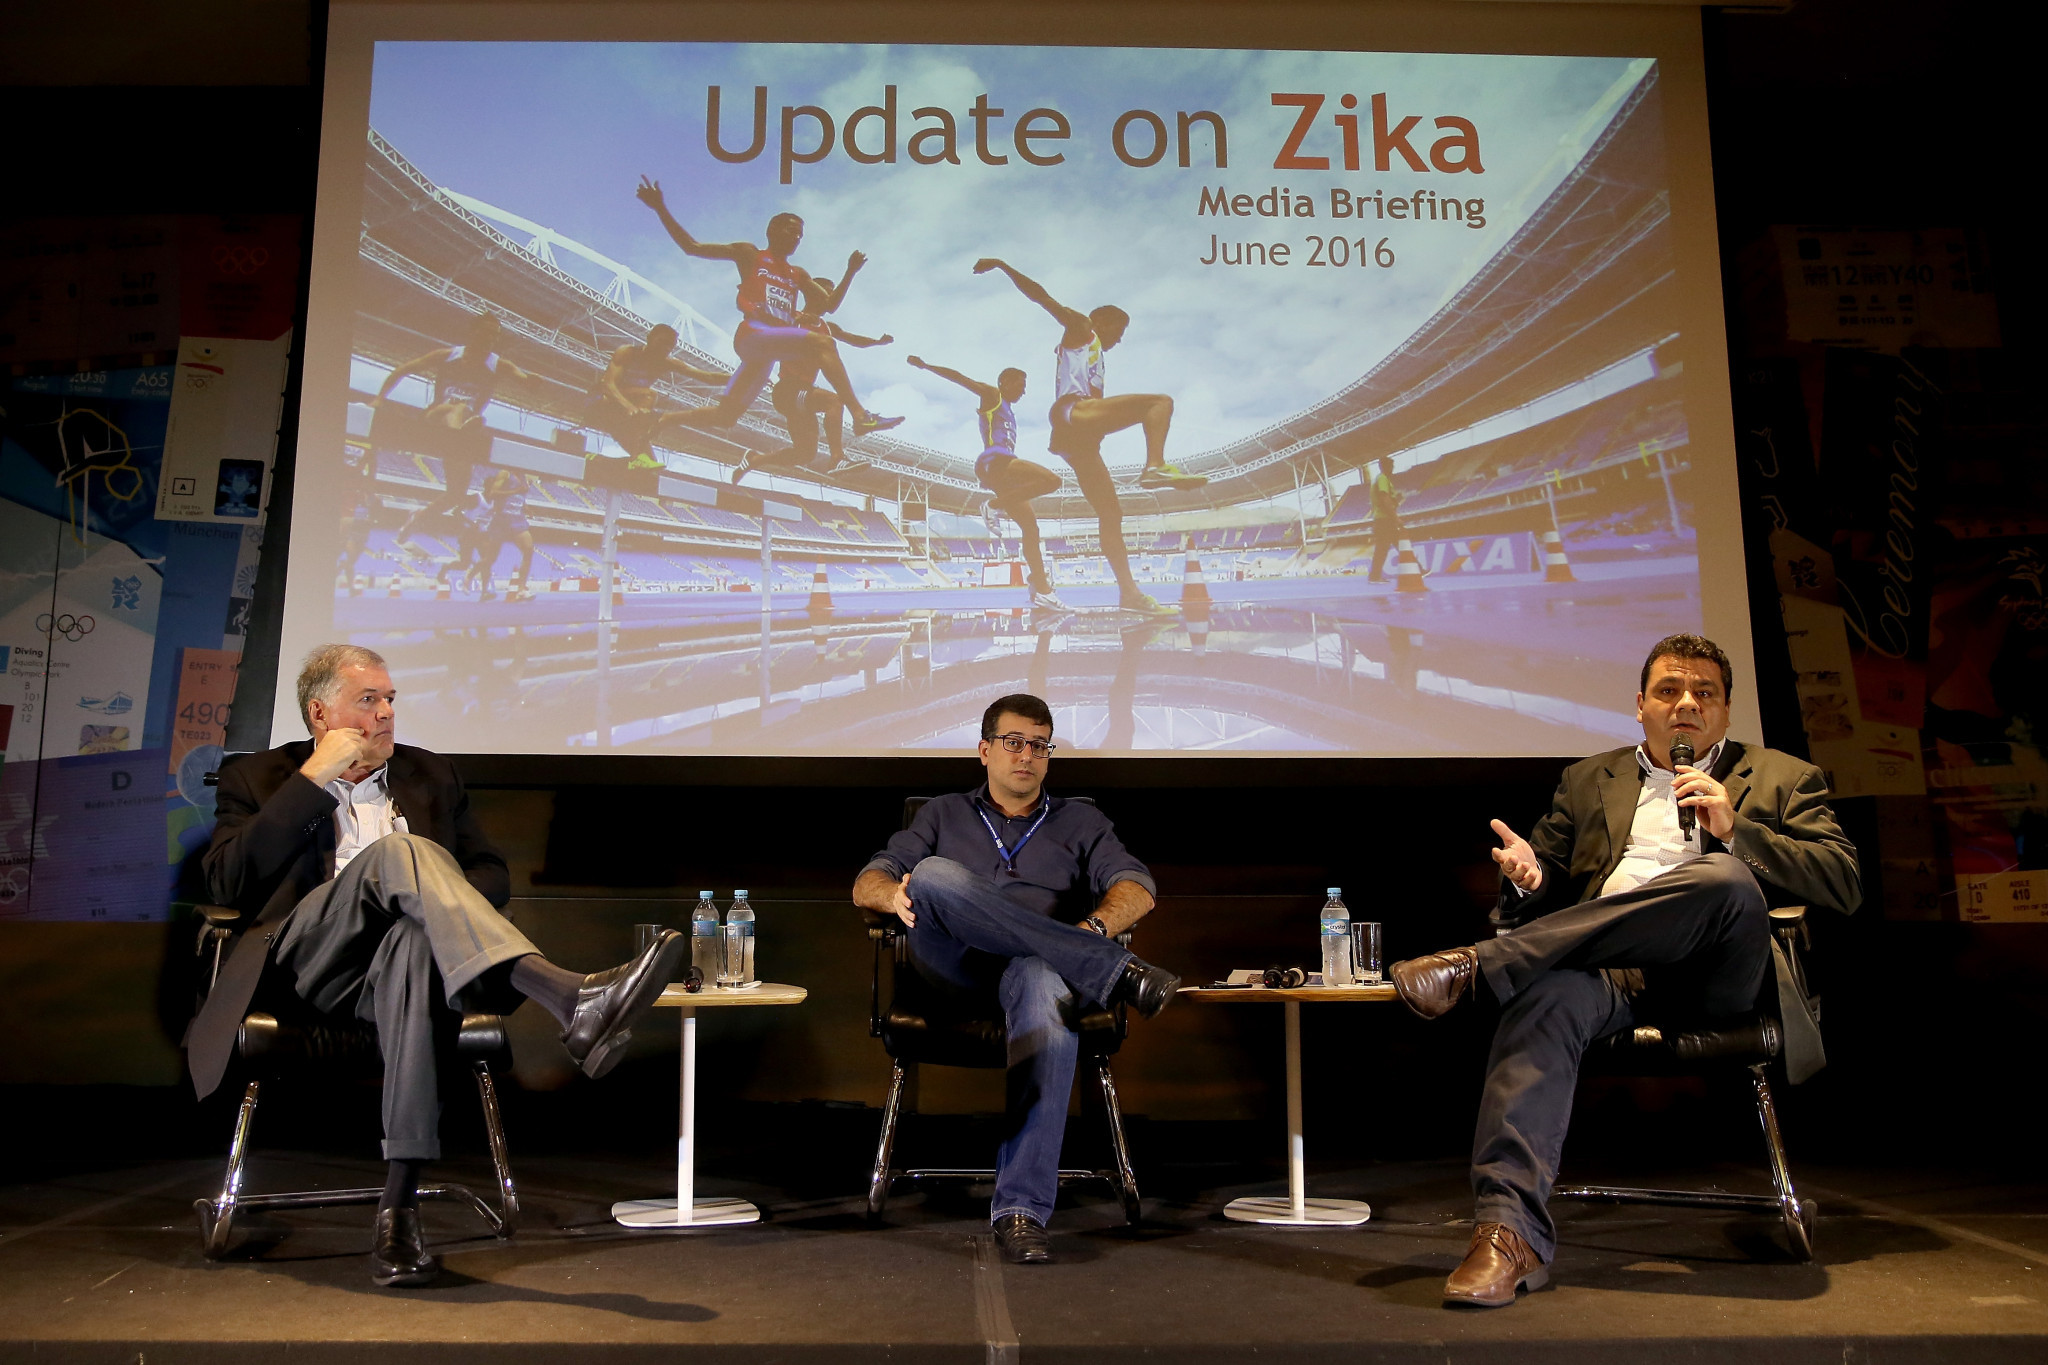 Zika virus was a major concern in the run-up to the Rio 2016 Olympic and Paralympic Games ©Getty Images